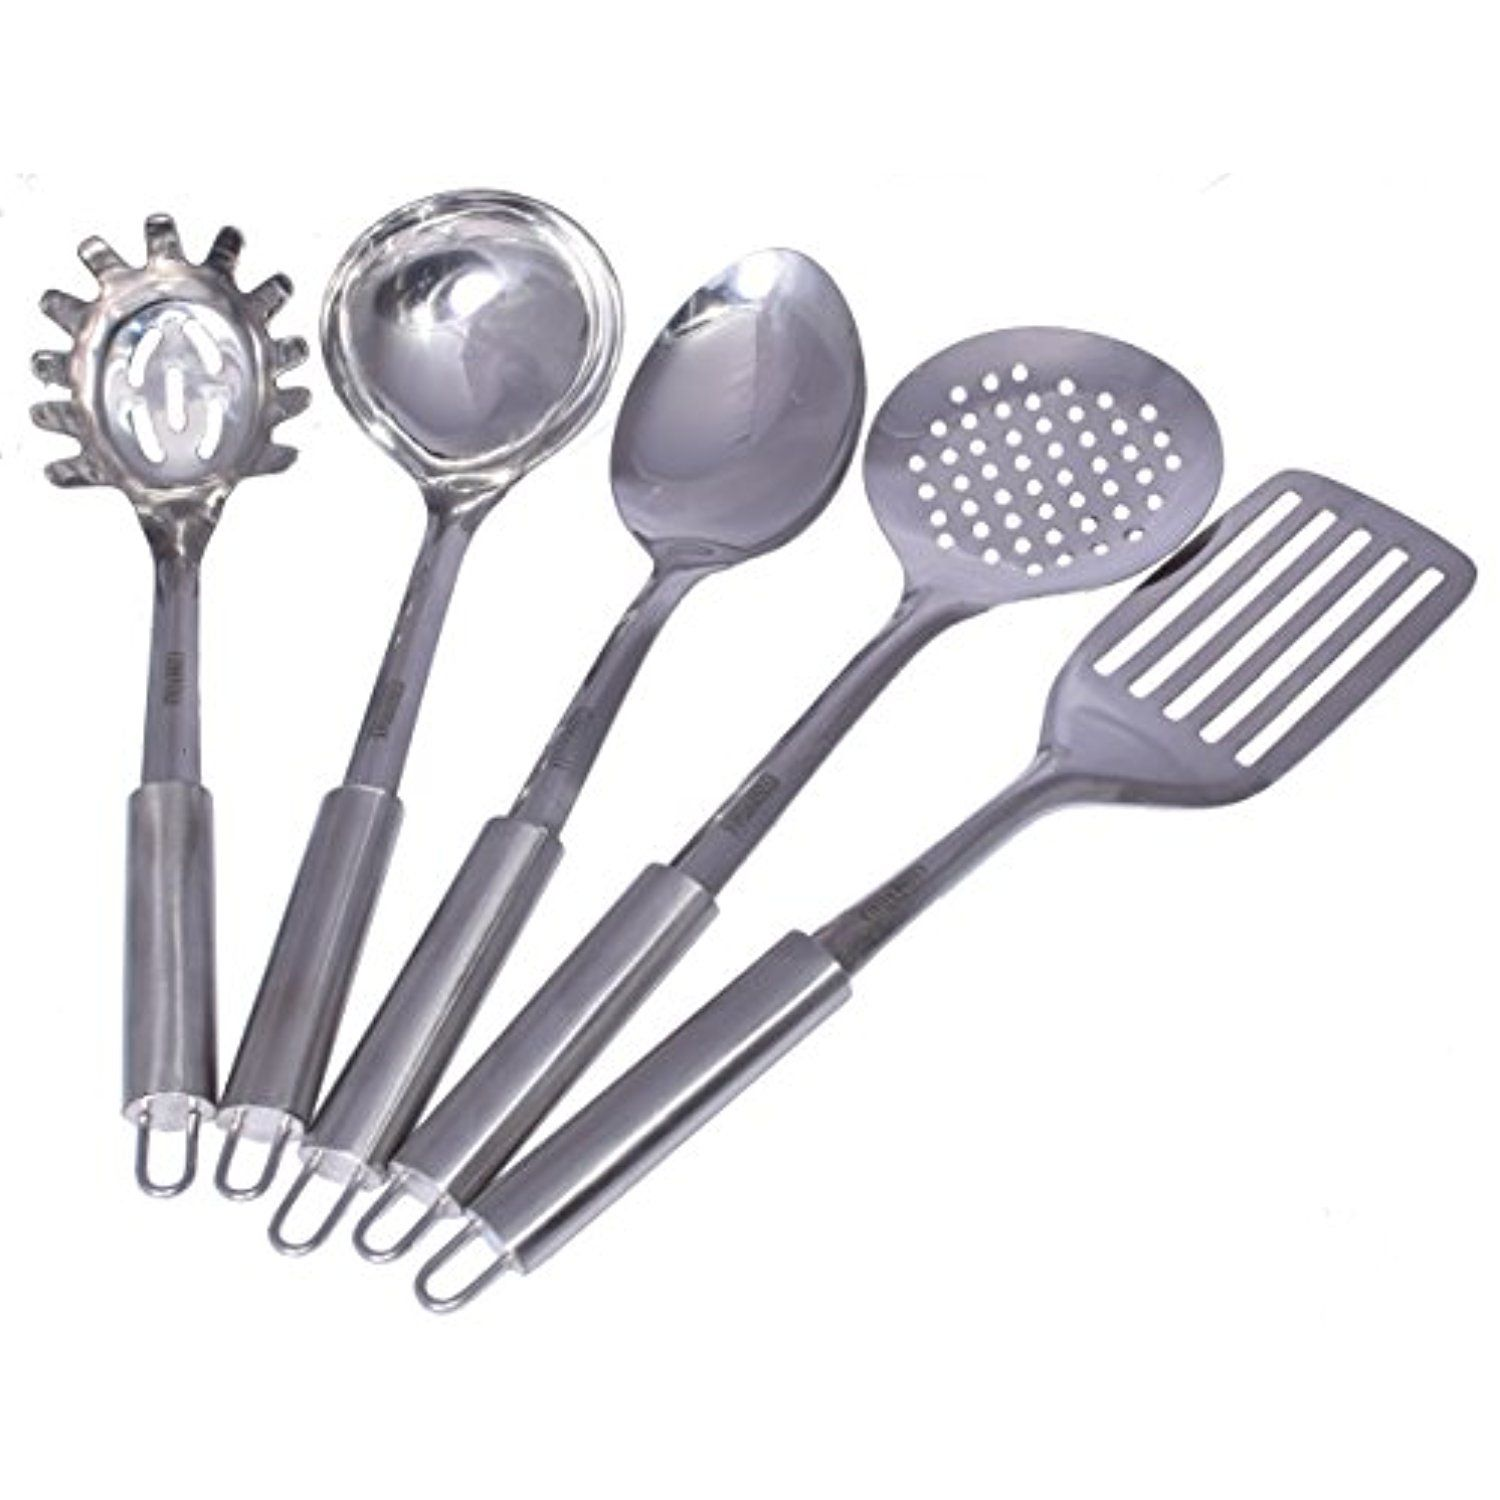 Cuissentials 5 Piece Stainless Steel Kitchen Tools Set Spaghetti